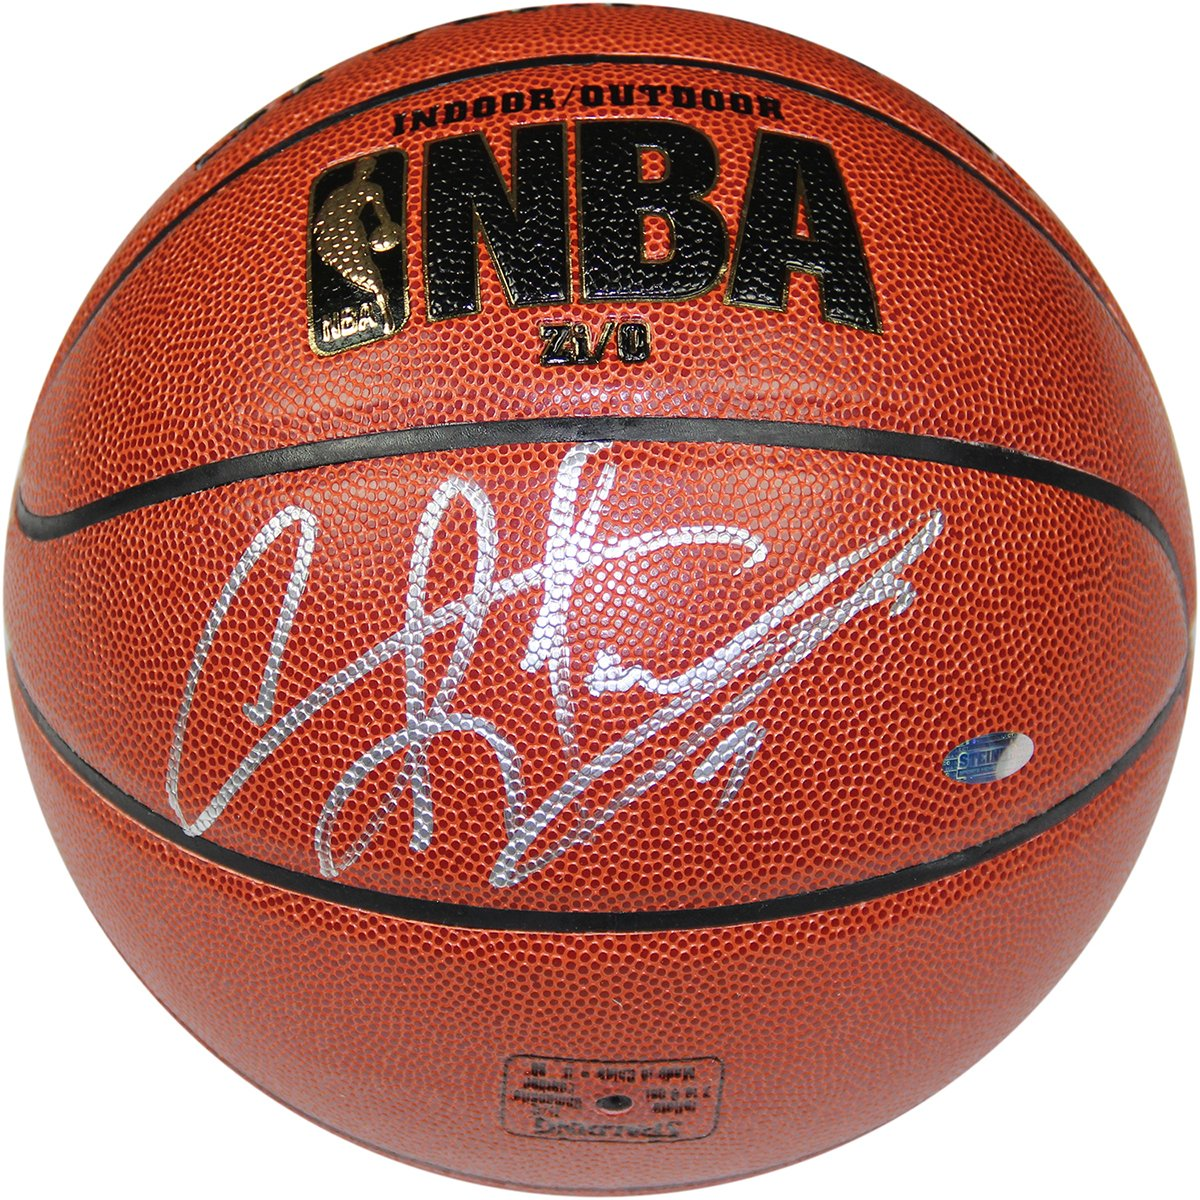 Steiner Sports NBA Chicago Bulls Dennis Rodman Signed I/O Basketball RODMBKS000004